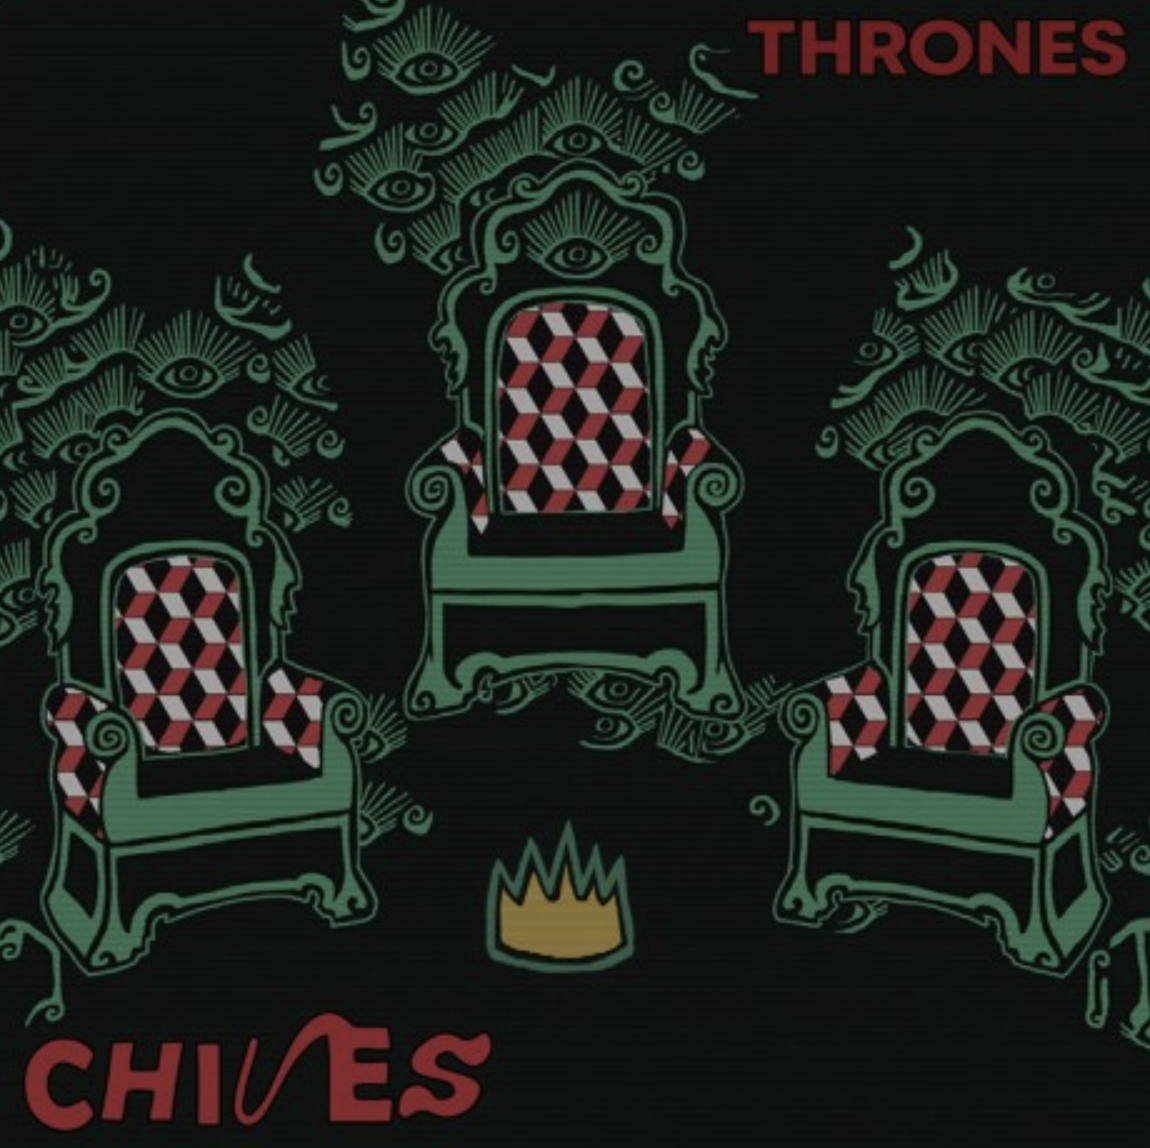 Thrones by Chives